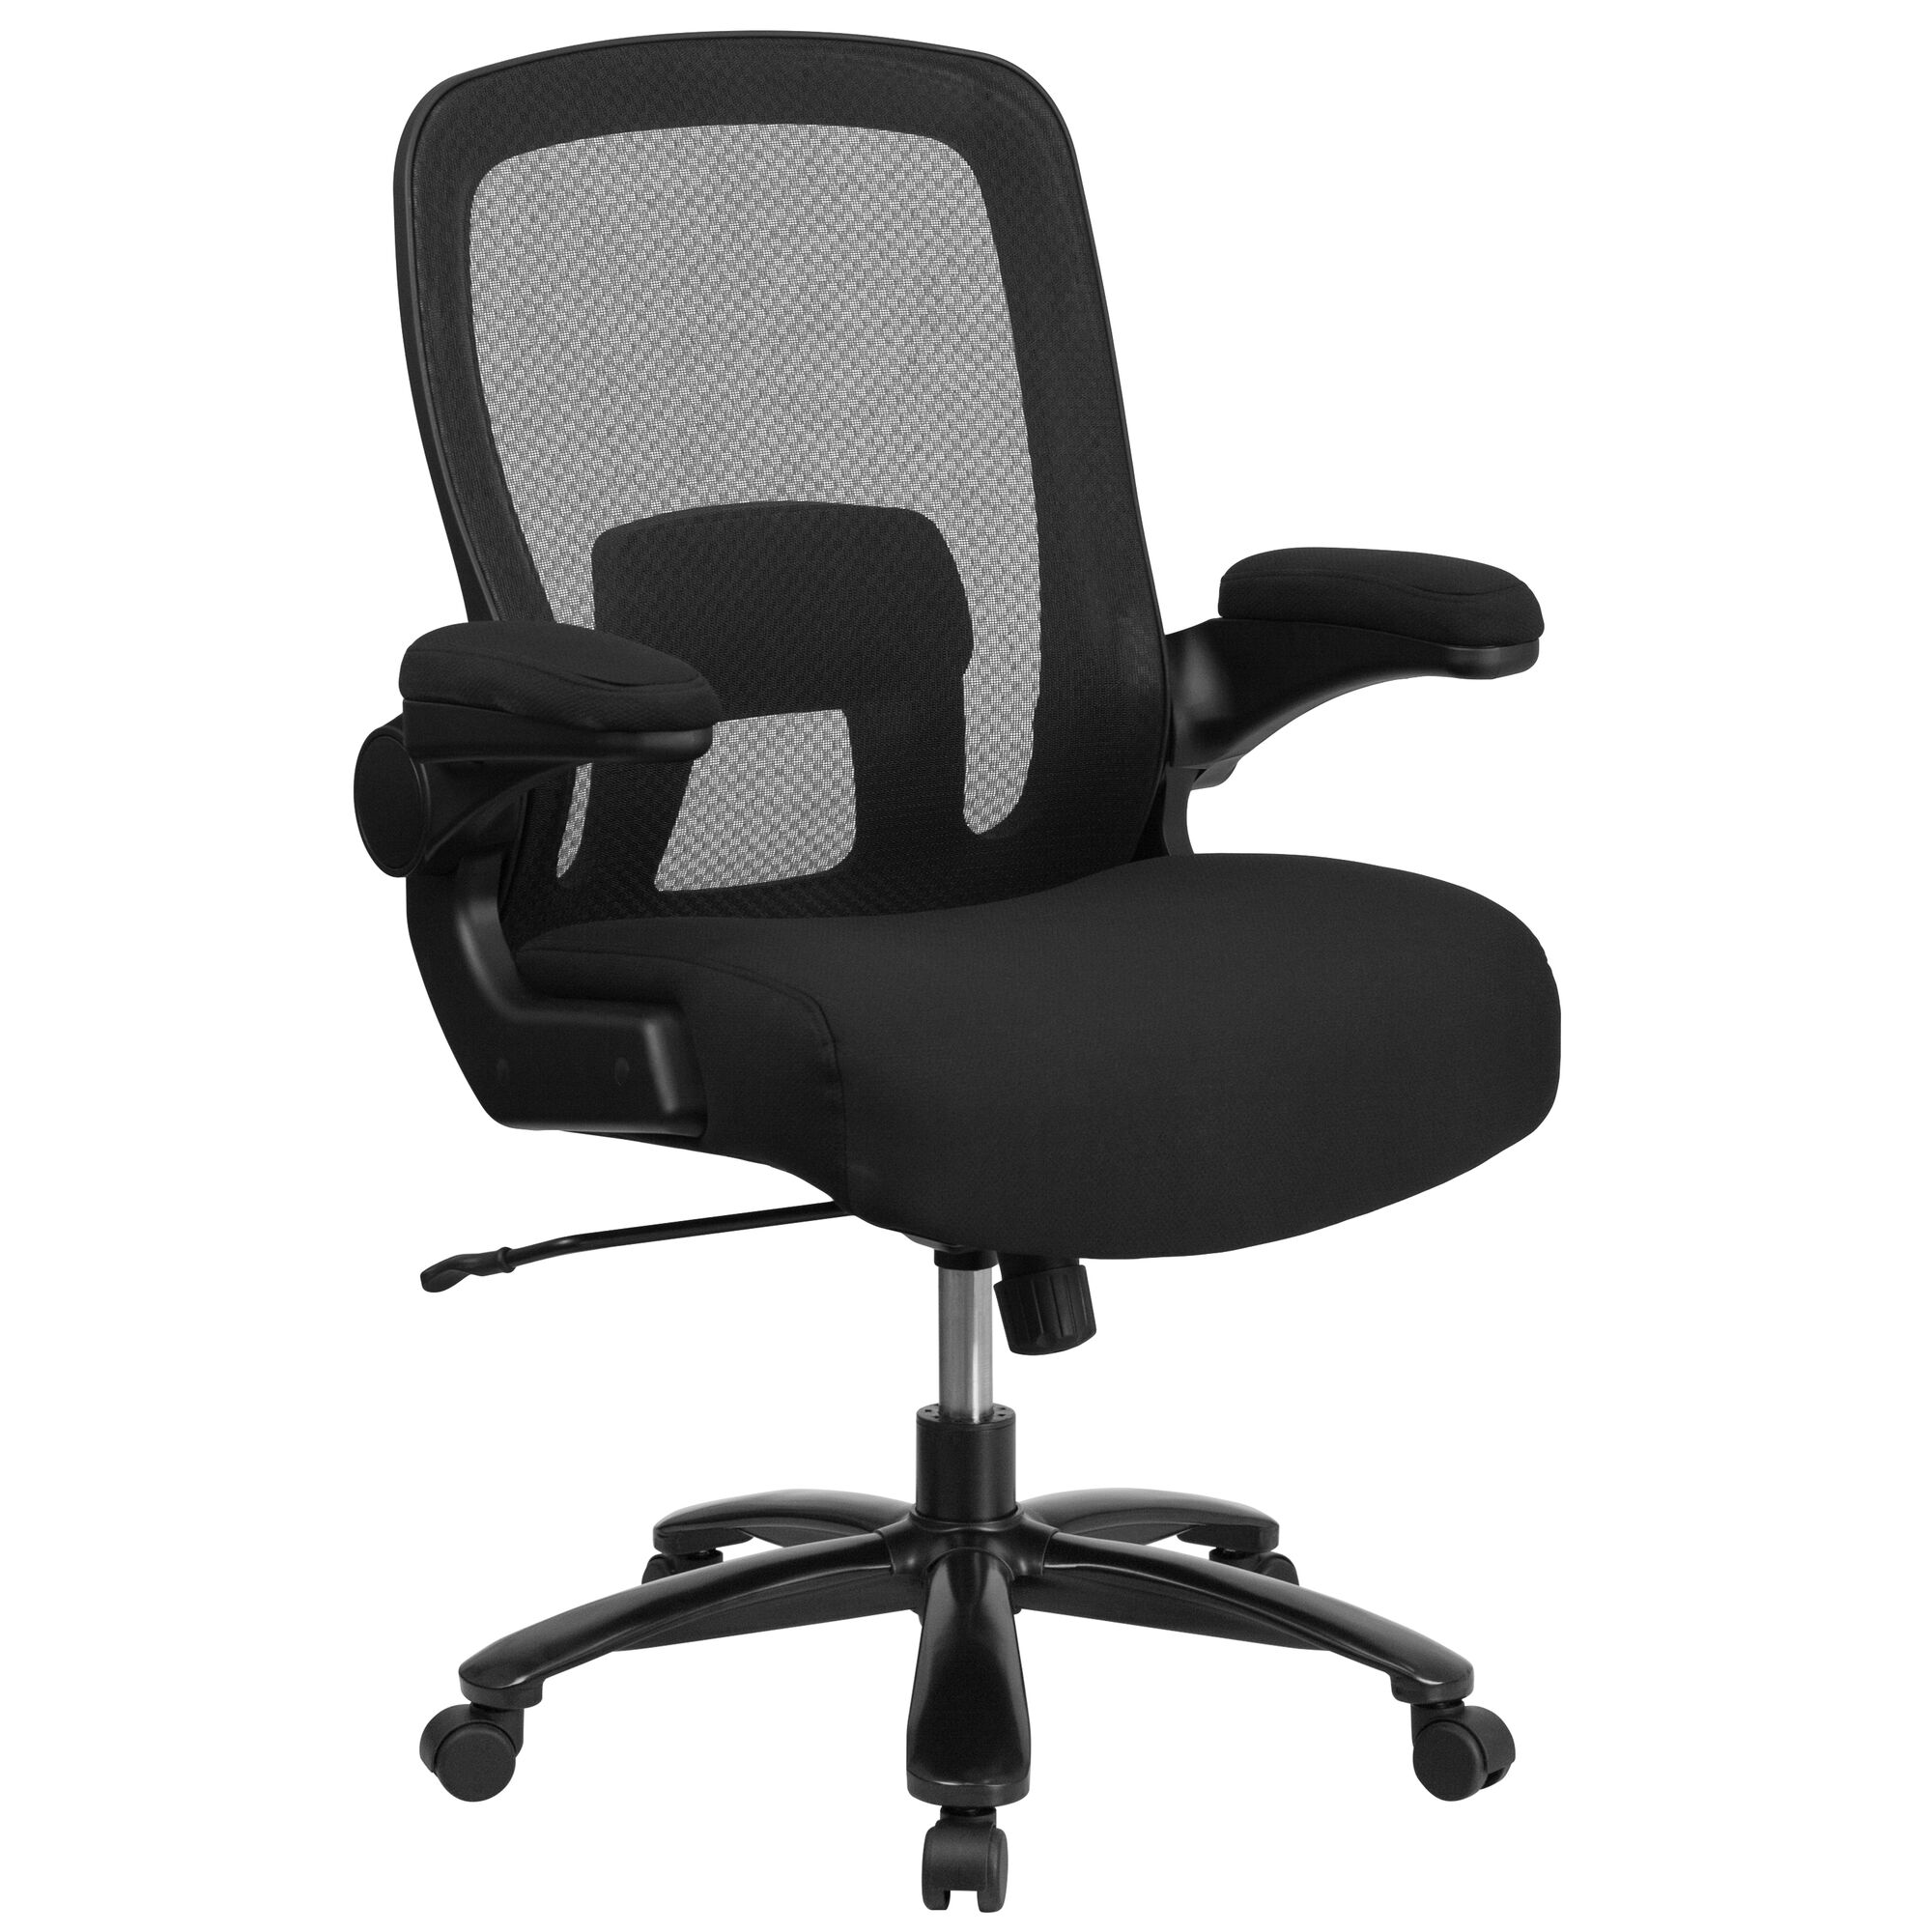 Tall Office Chair Black Mesh Executive Swivel With Lumbar And Back Support Wheels